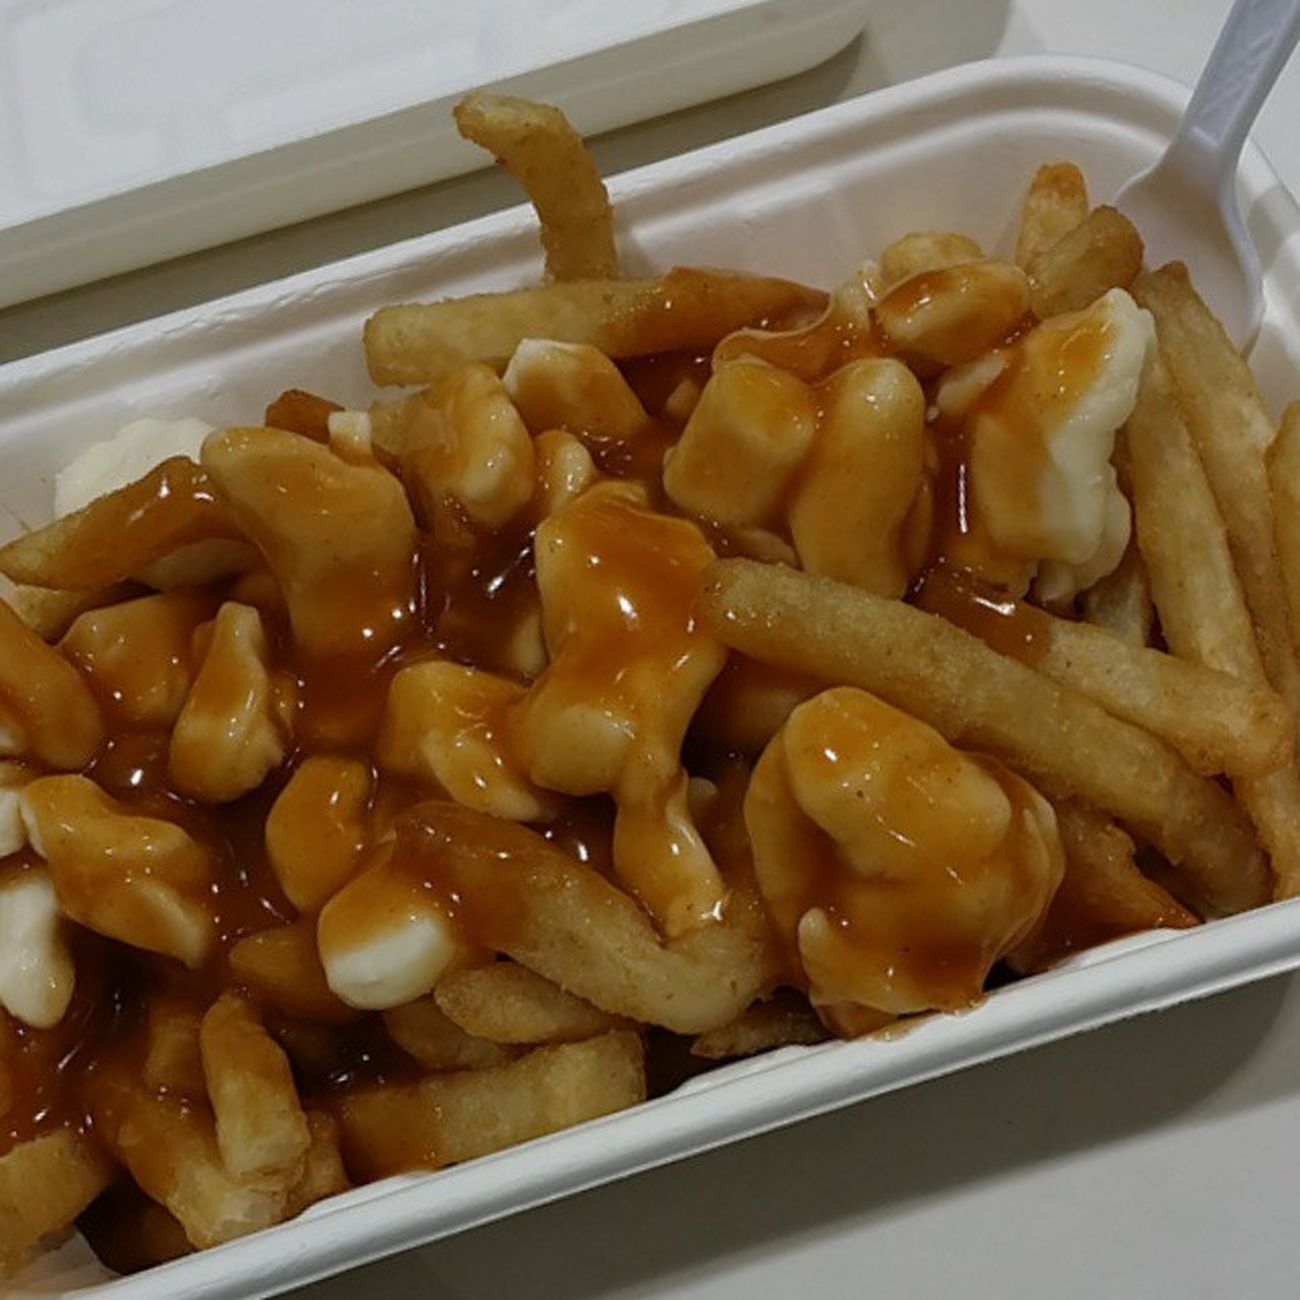 My favourite part about costco :) Poutine